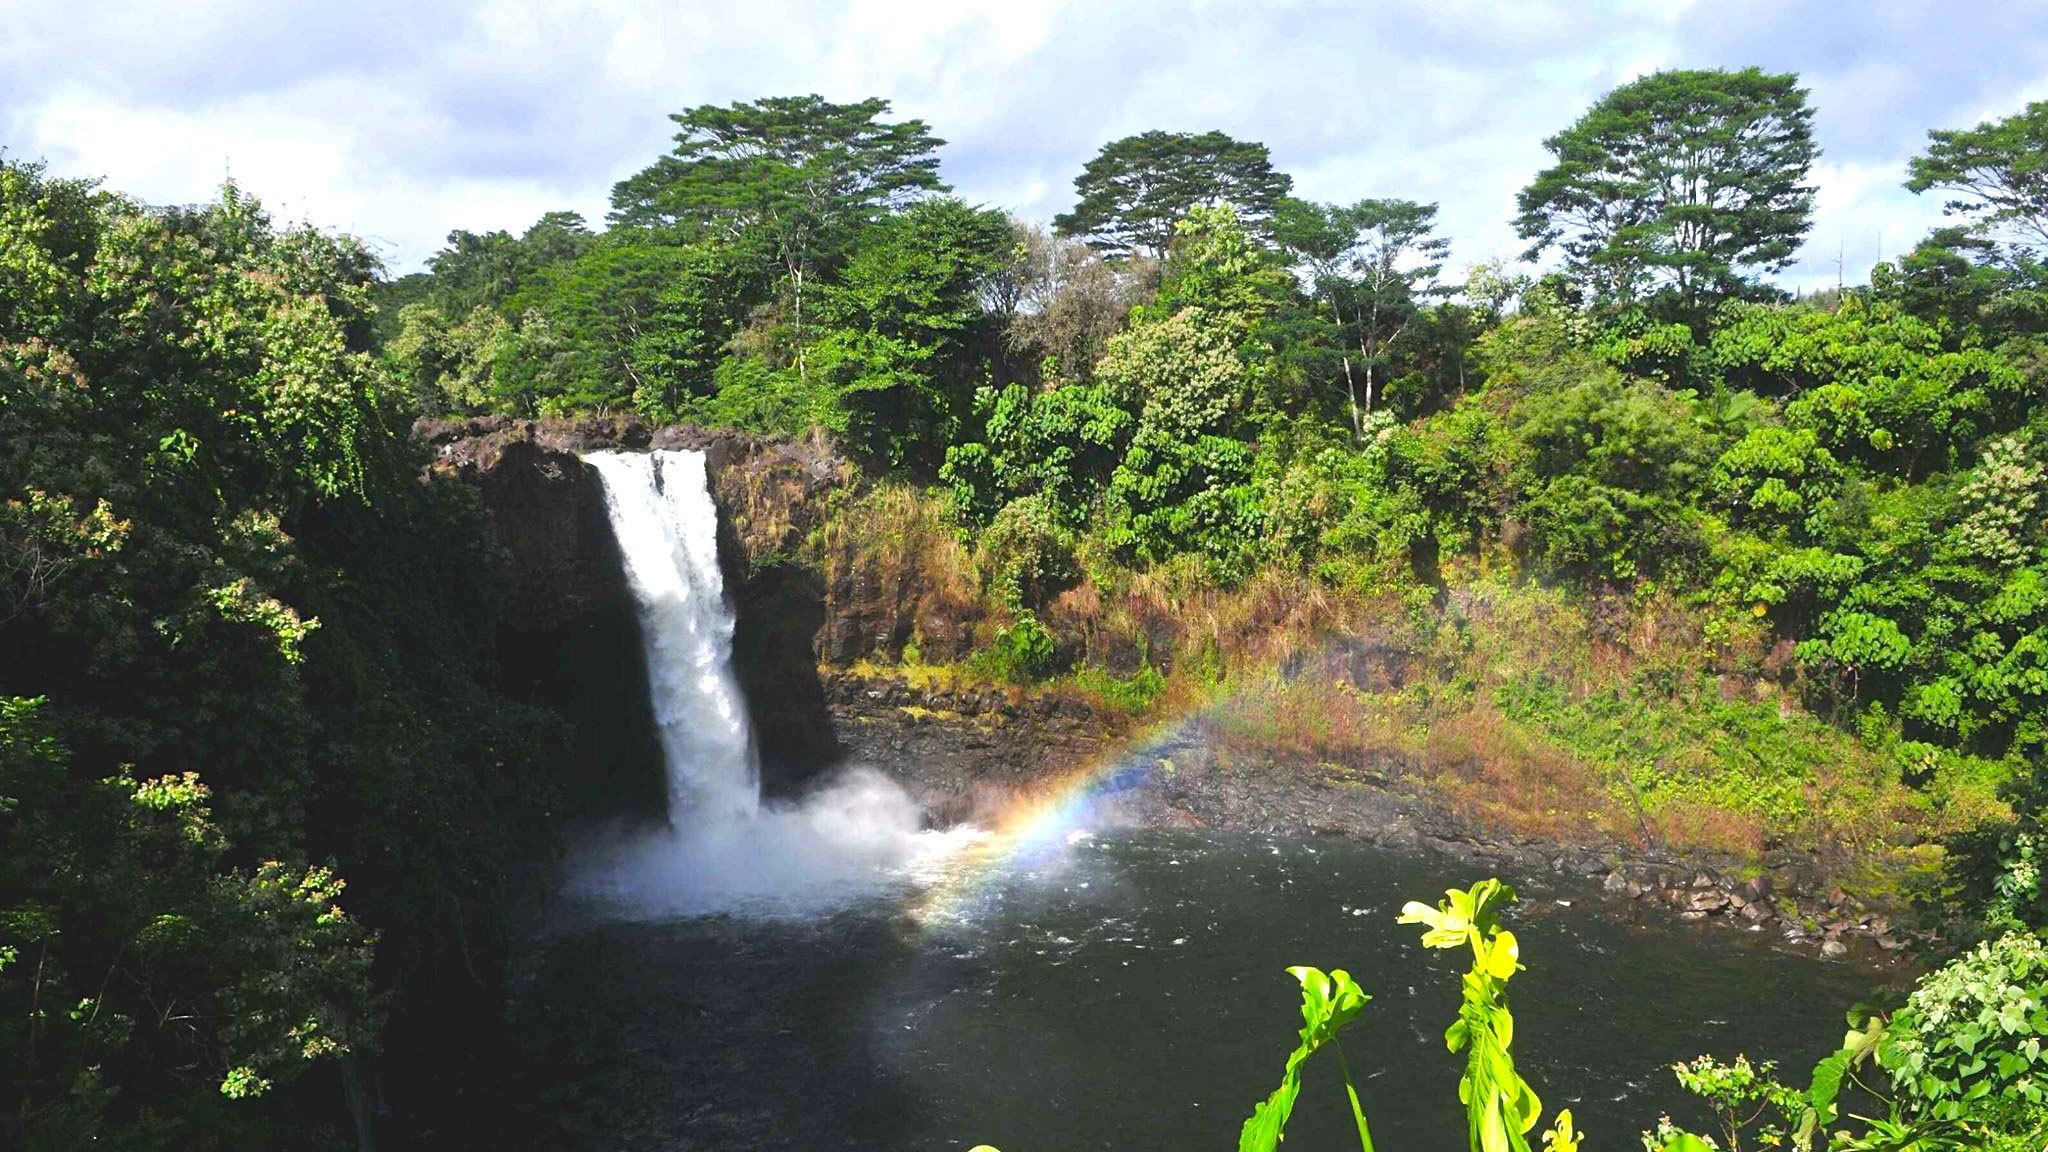 Experience the majestic waterfalls that surround Hawaii Volcanoes National Park